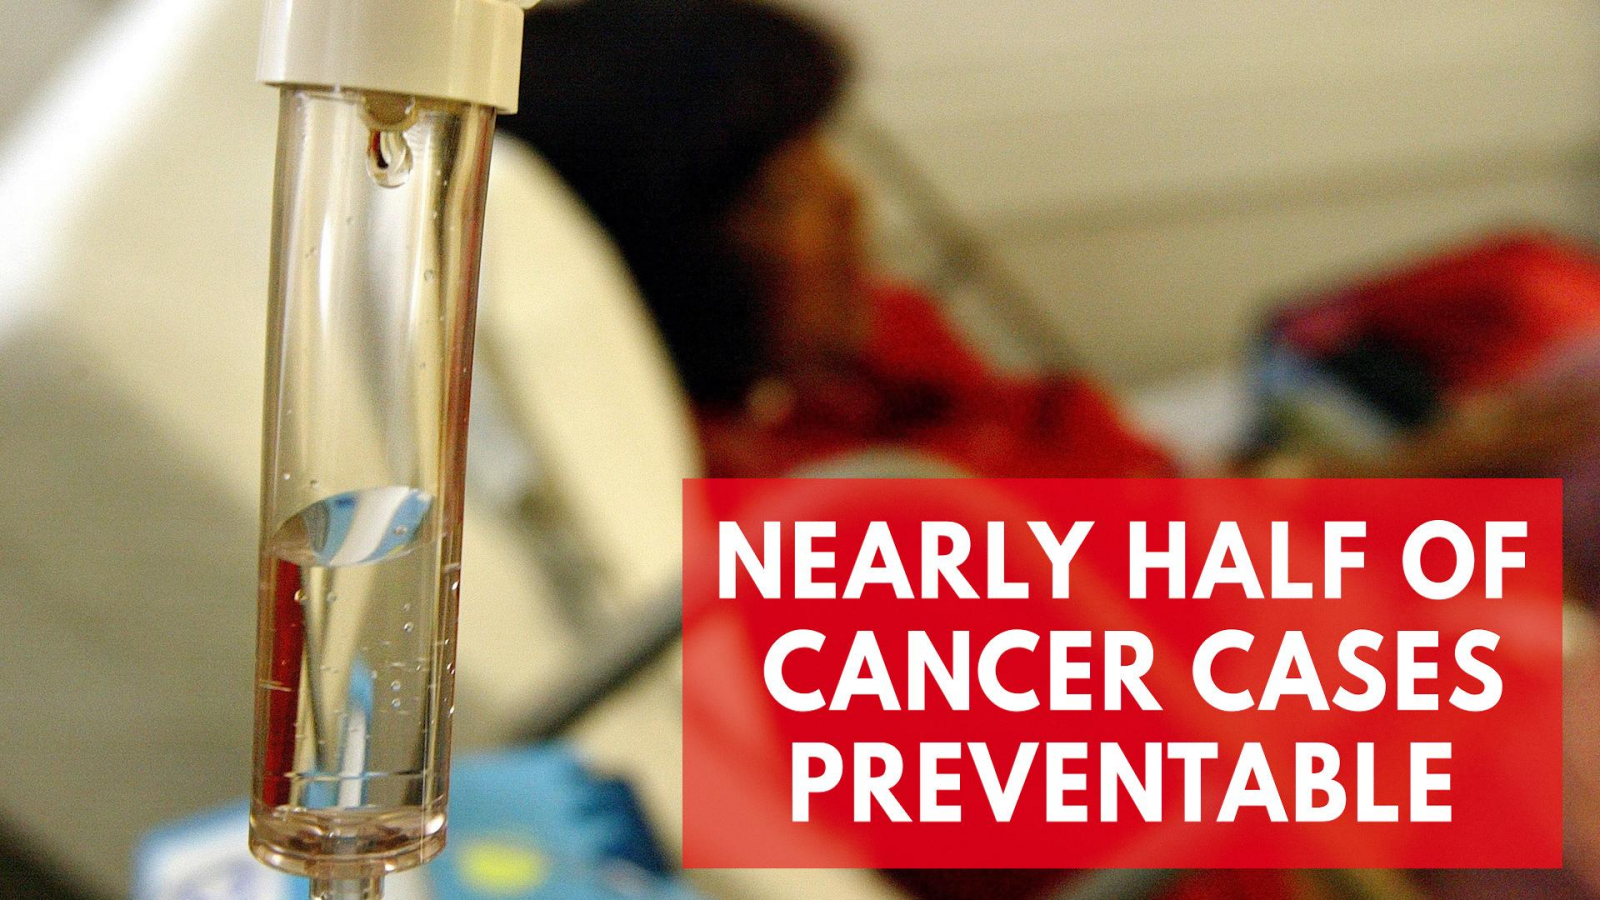 four-in-10-cancer-cases-could-be-prevented-with-lifestyle-changes